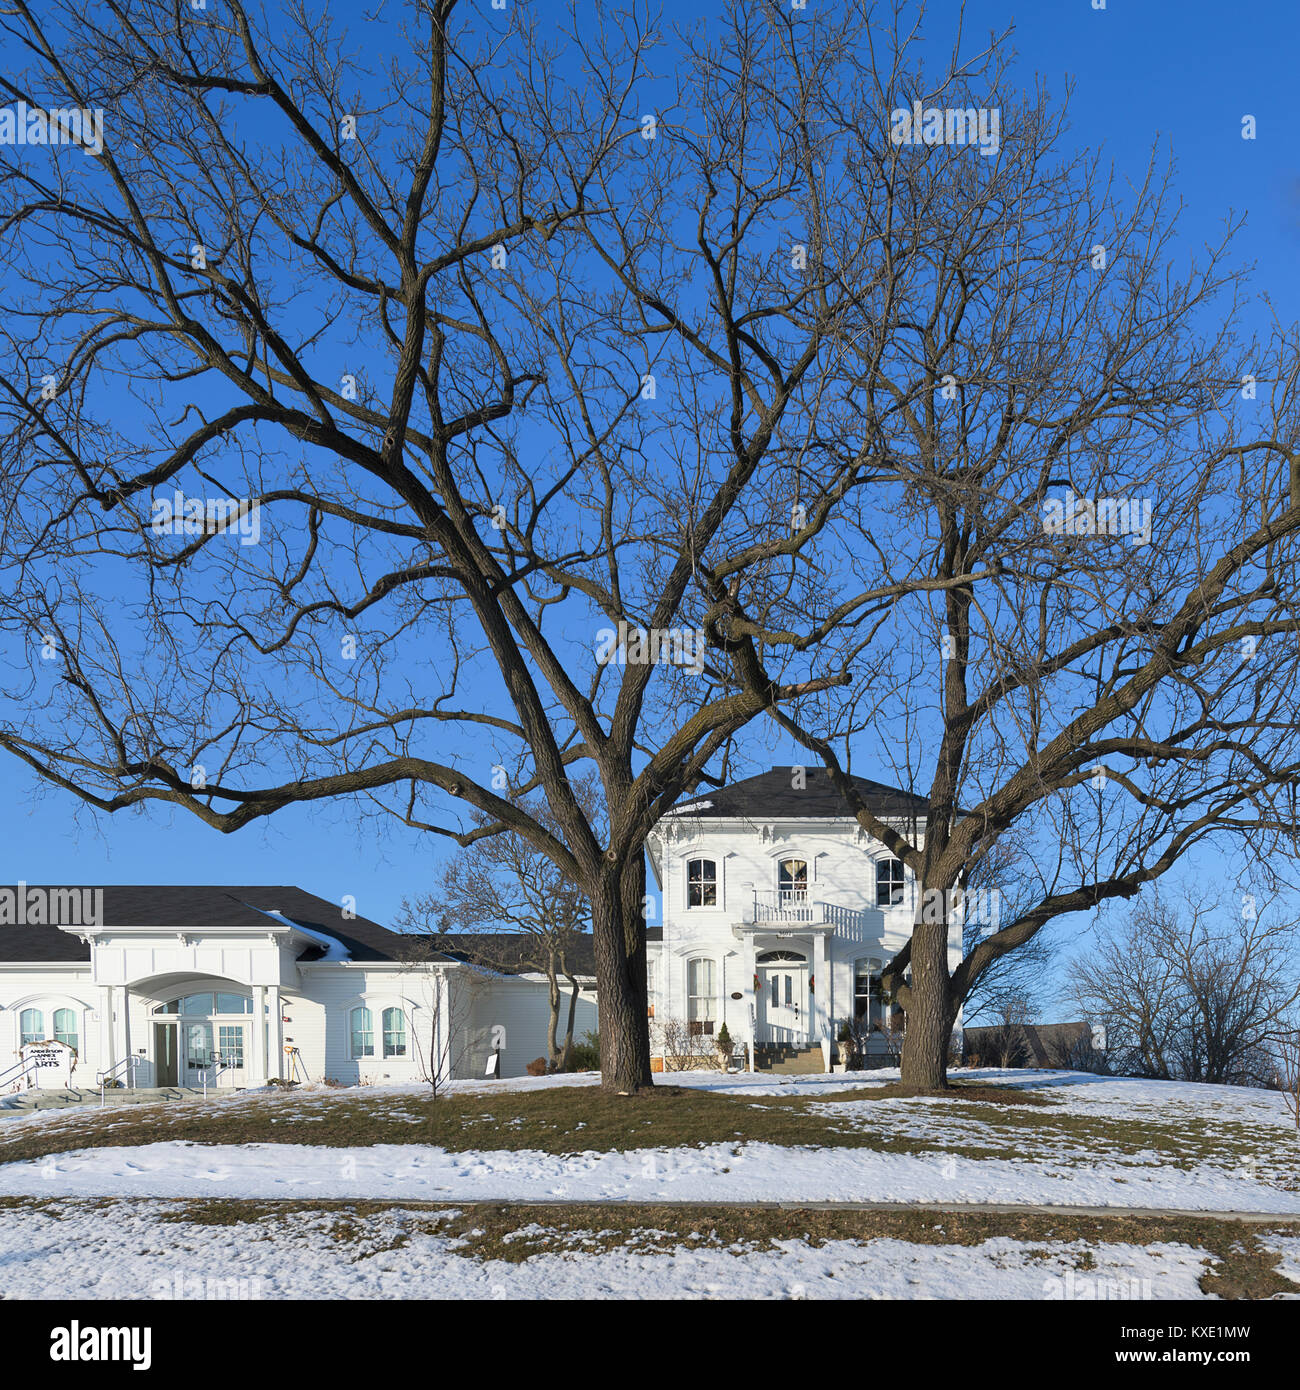 The McCord House in Palos Park, Illinois. This is the oldest building (1834) in the southwest suburbs of Chicago. - Stock Image